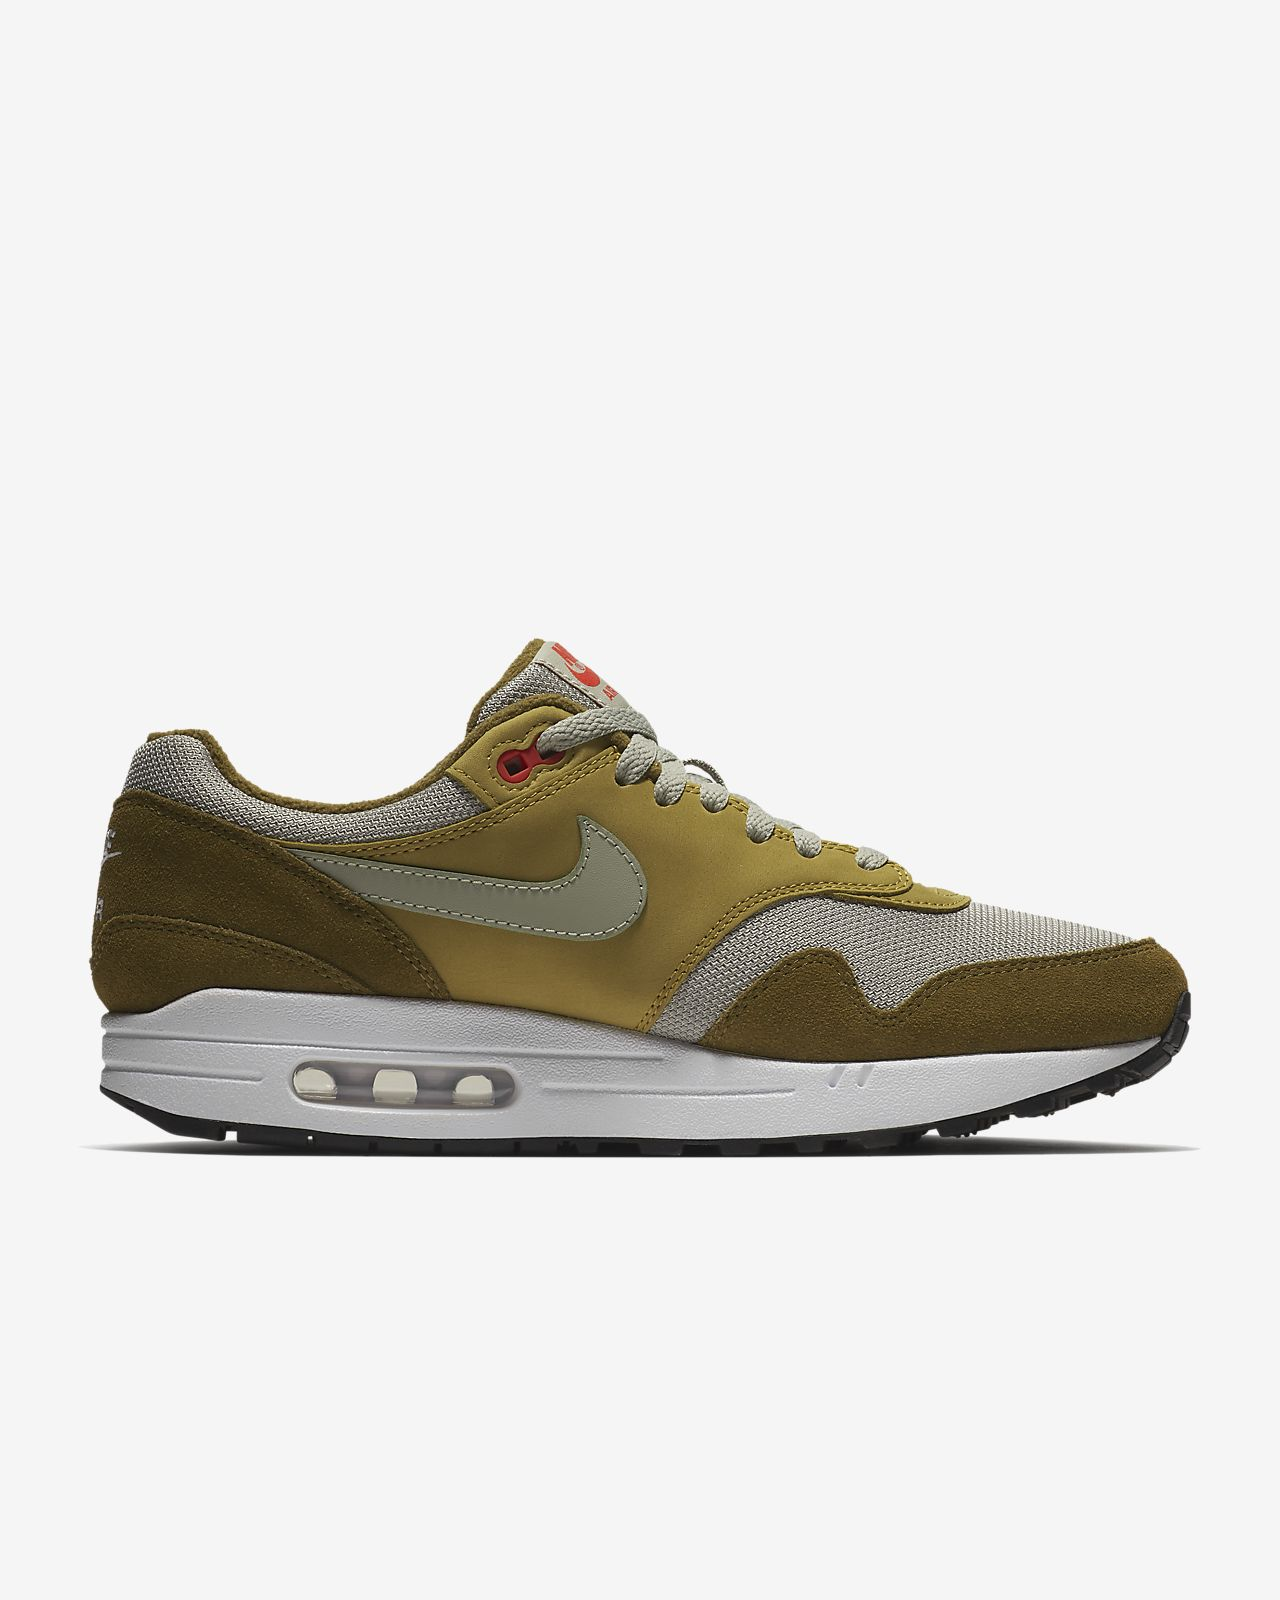 Nike Men's AIR MAX 1 PREMIUM RETRO Shoes Olive Flak/Spruce Fog 908366-300 c